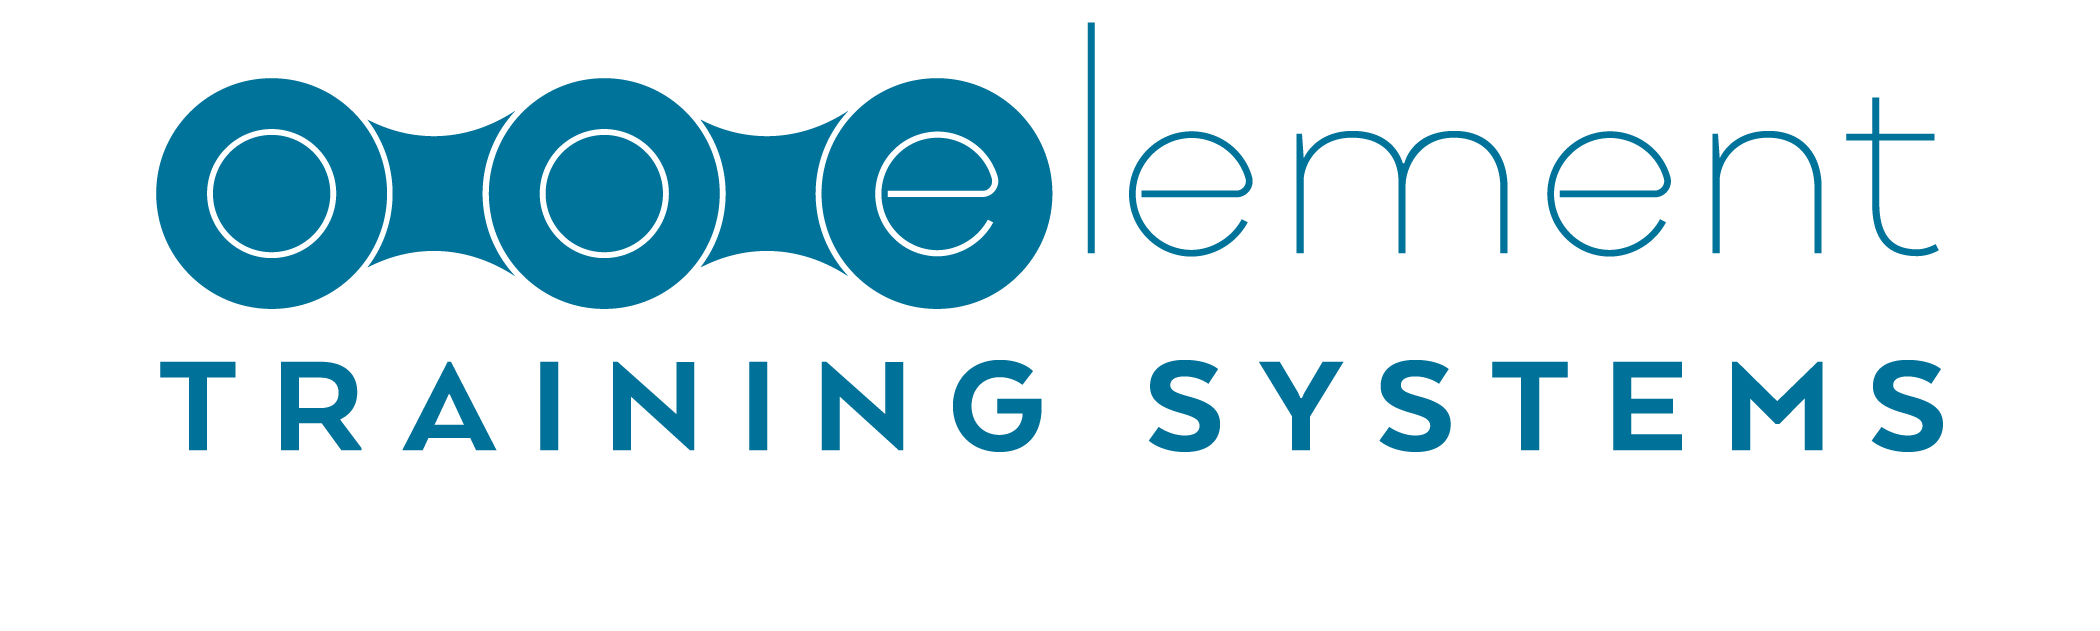 element_training_systems_final_solid_all_blue_RGB.png